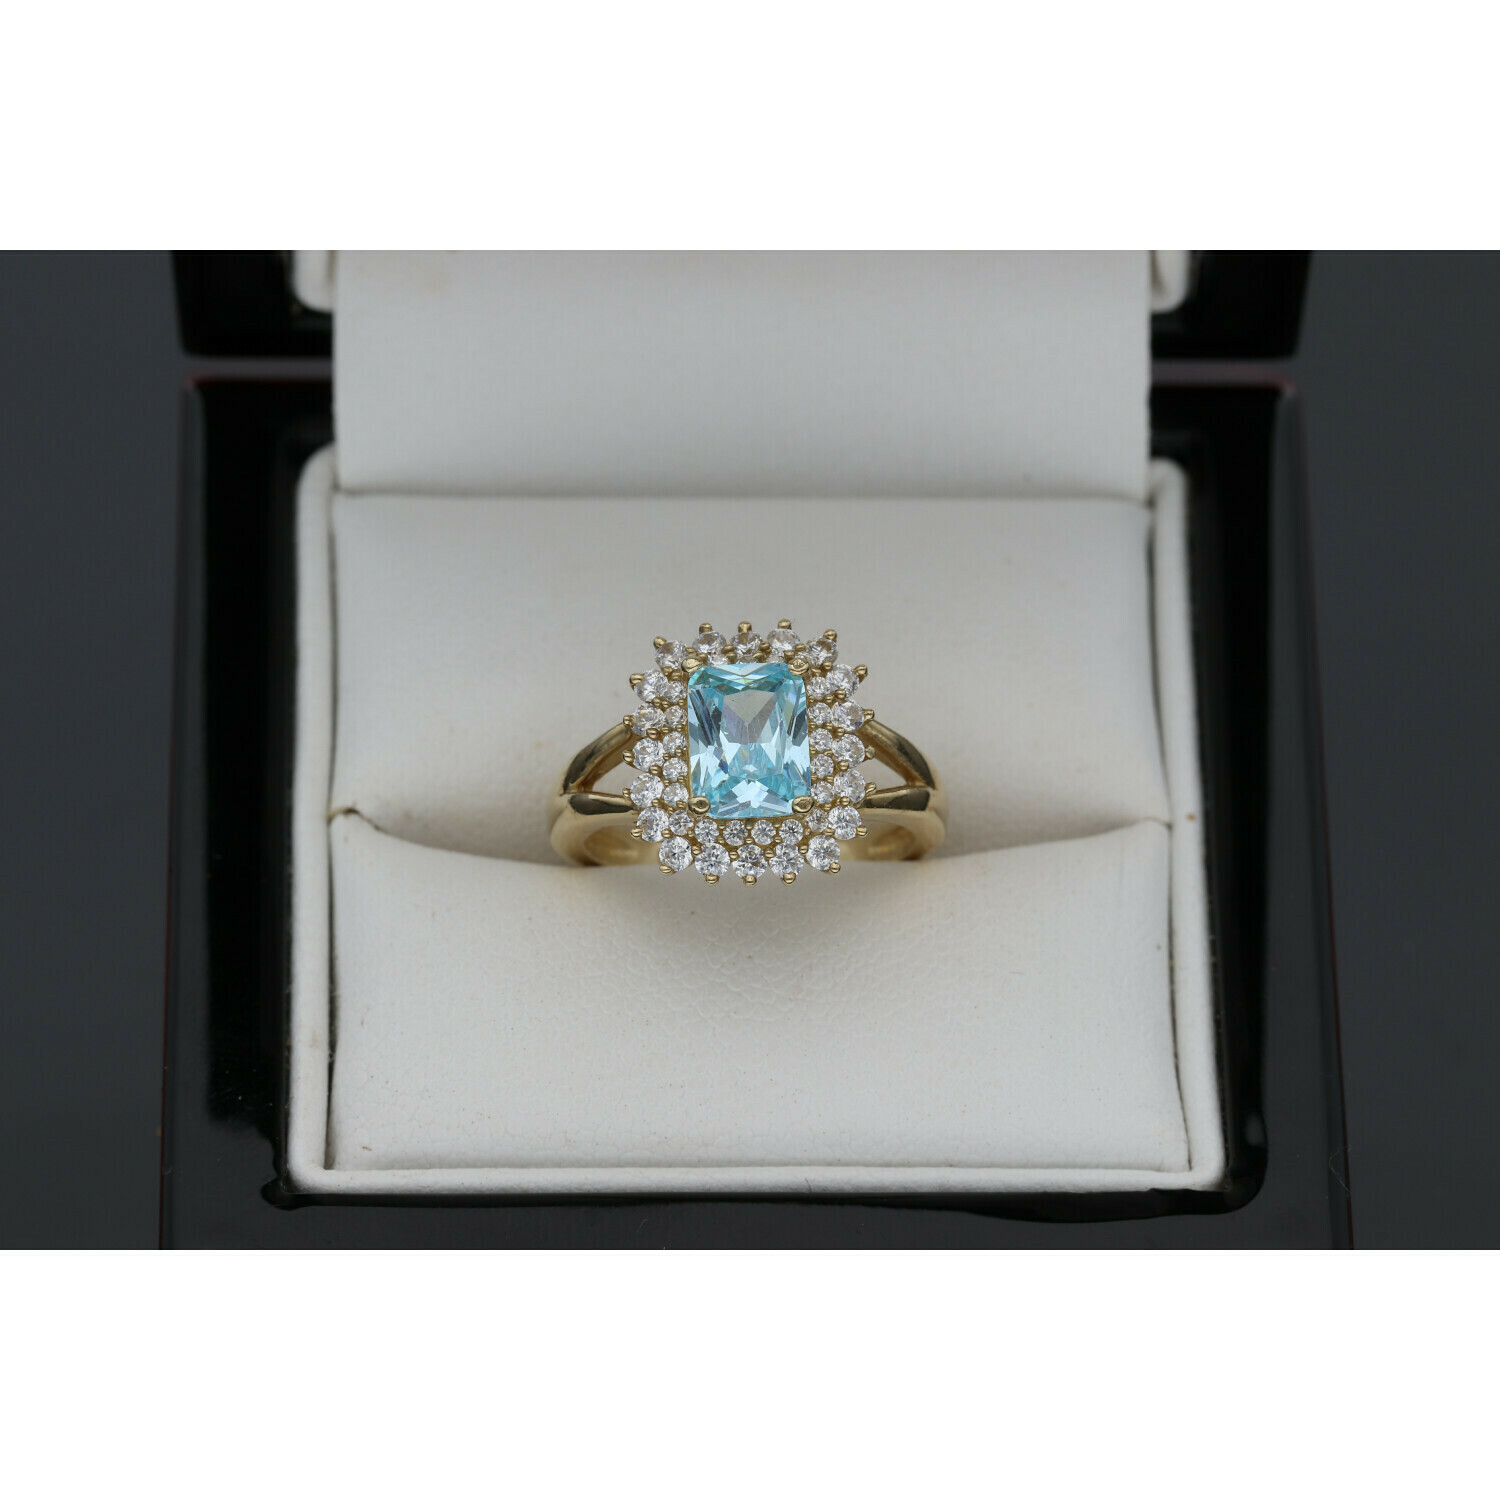 10 karat  Gold & Zirconium Light Blue Square Stone Ring